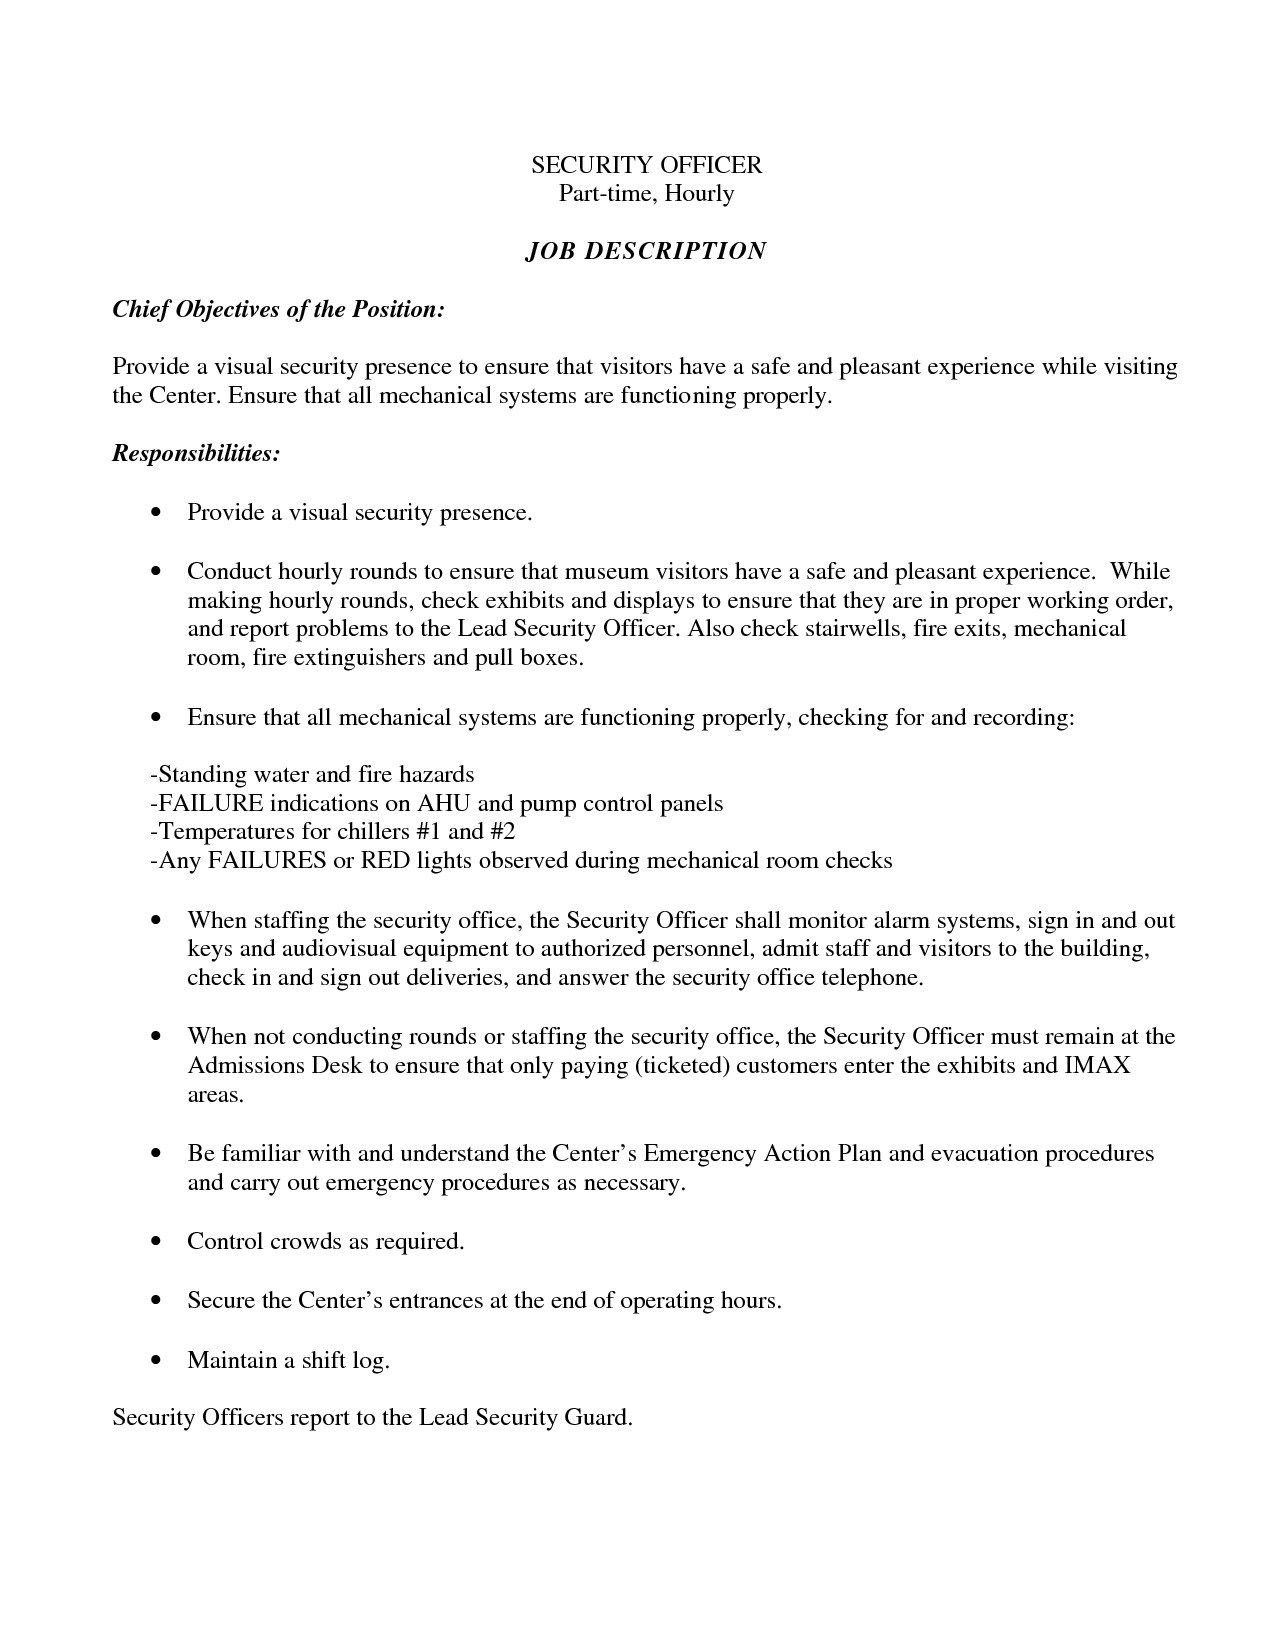 Easy Resume Tips Objective To Follow Security Resume Job Resume Examples Job Resume Samples